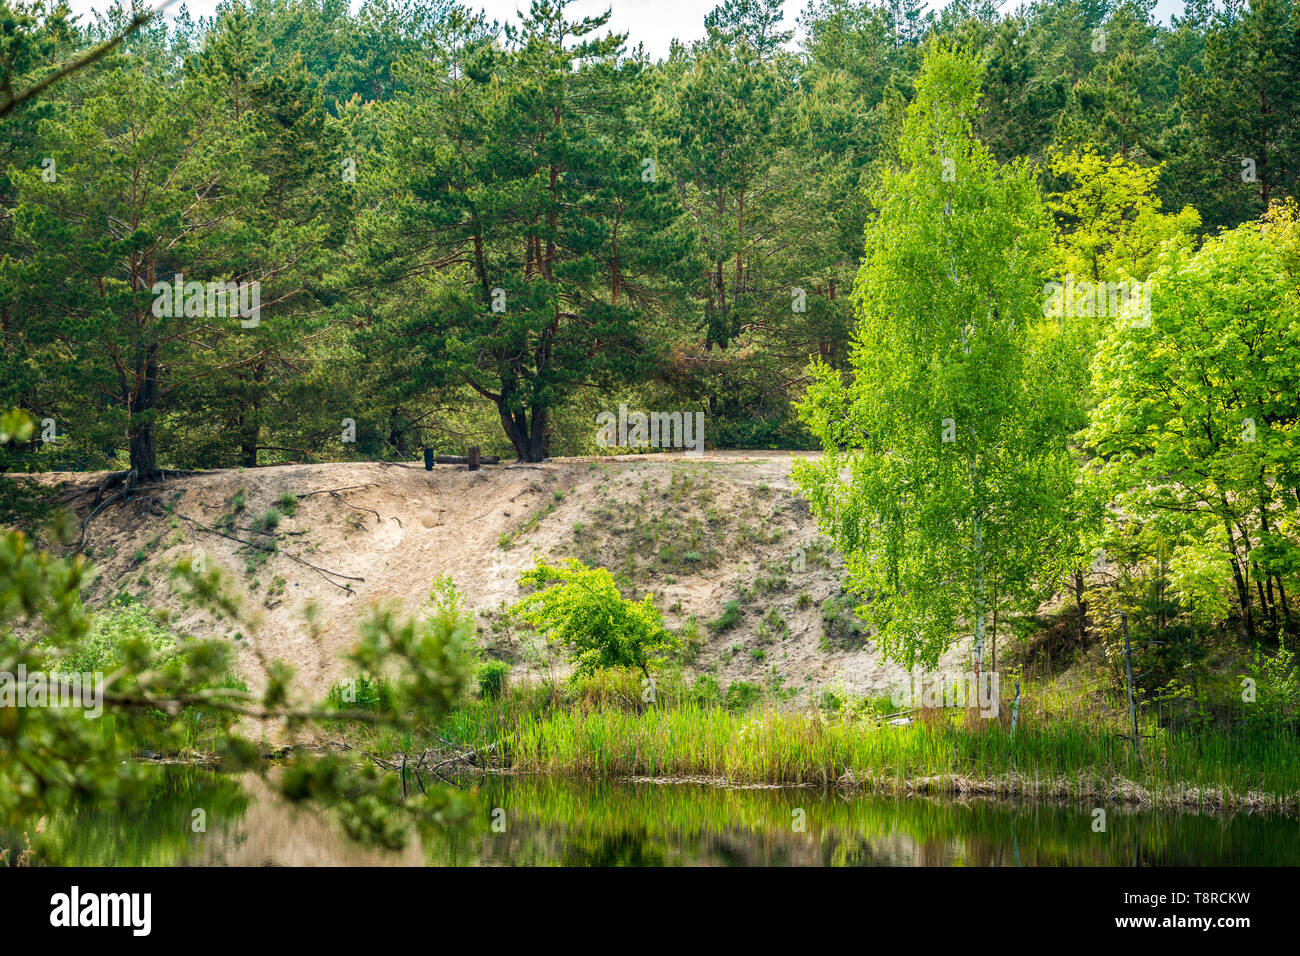 Green shore of the small lake. A small summer calm lake, pine forest and young deciduous trees on the shore. - Stock Image